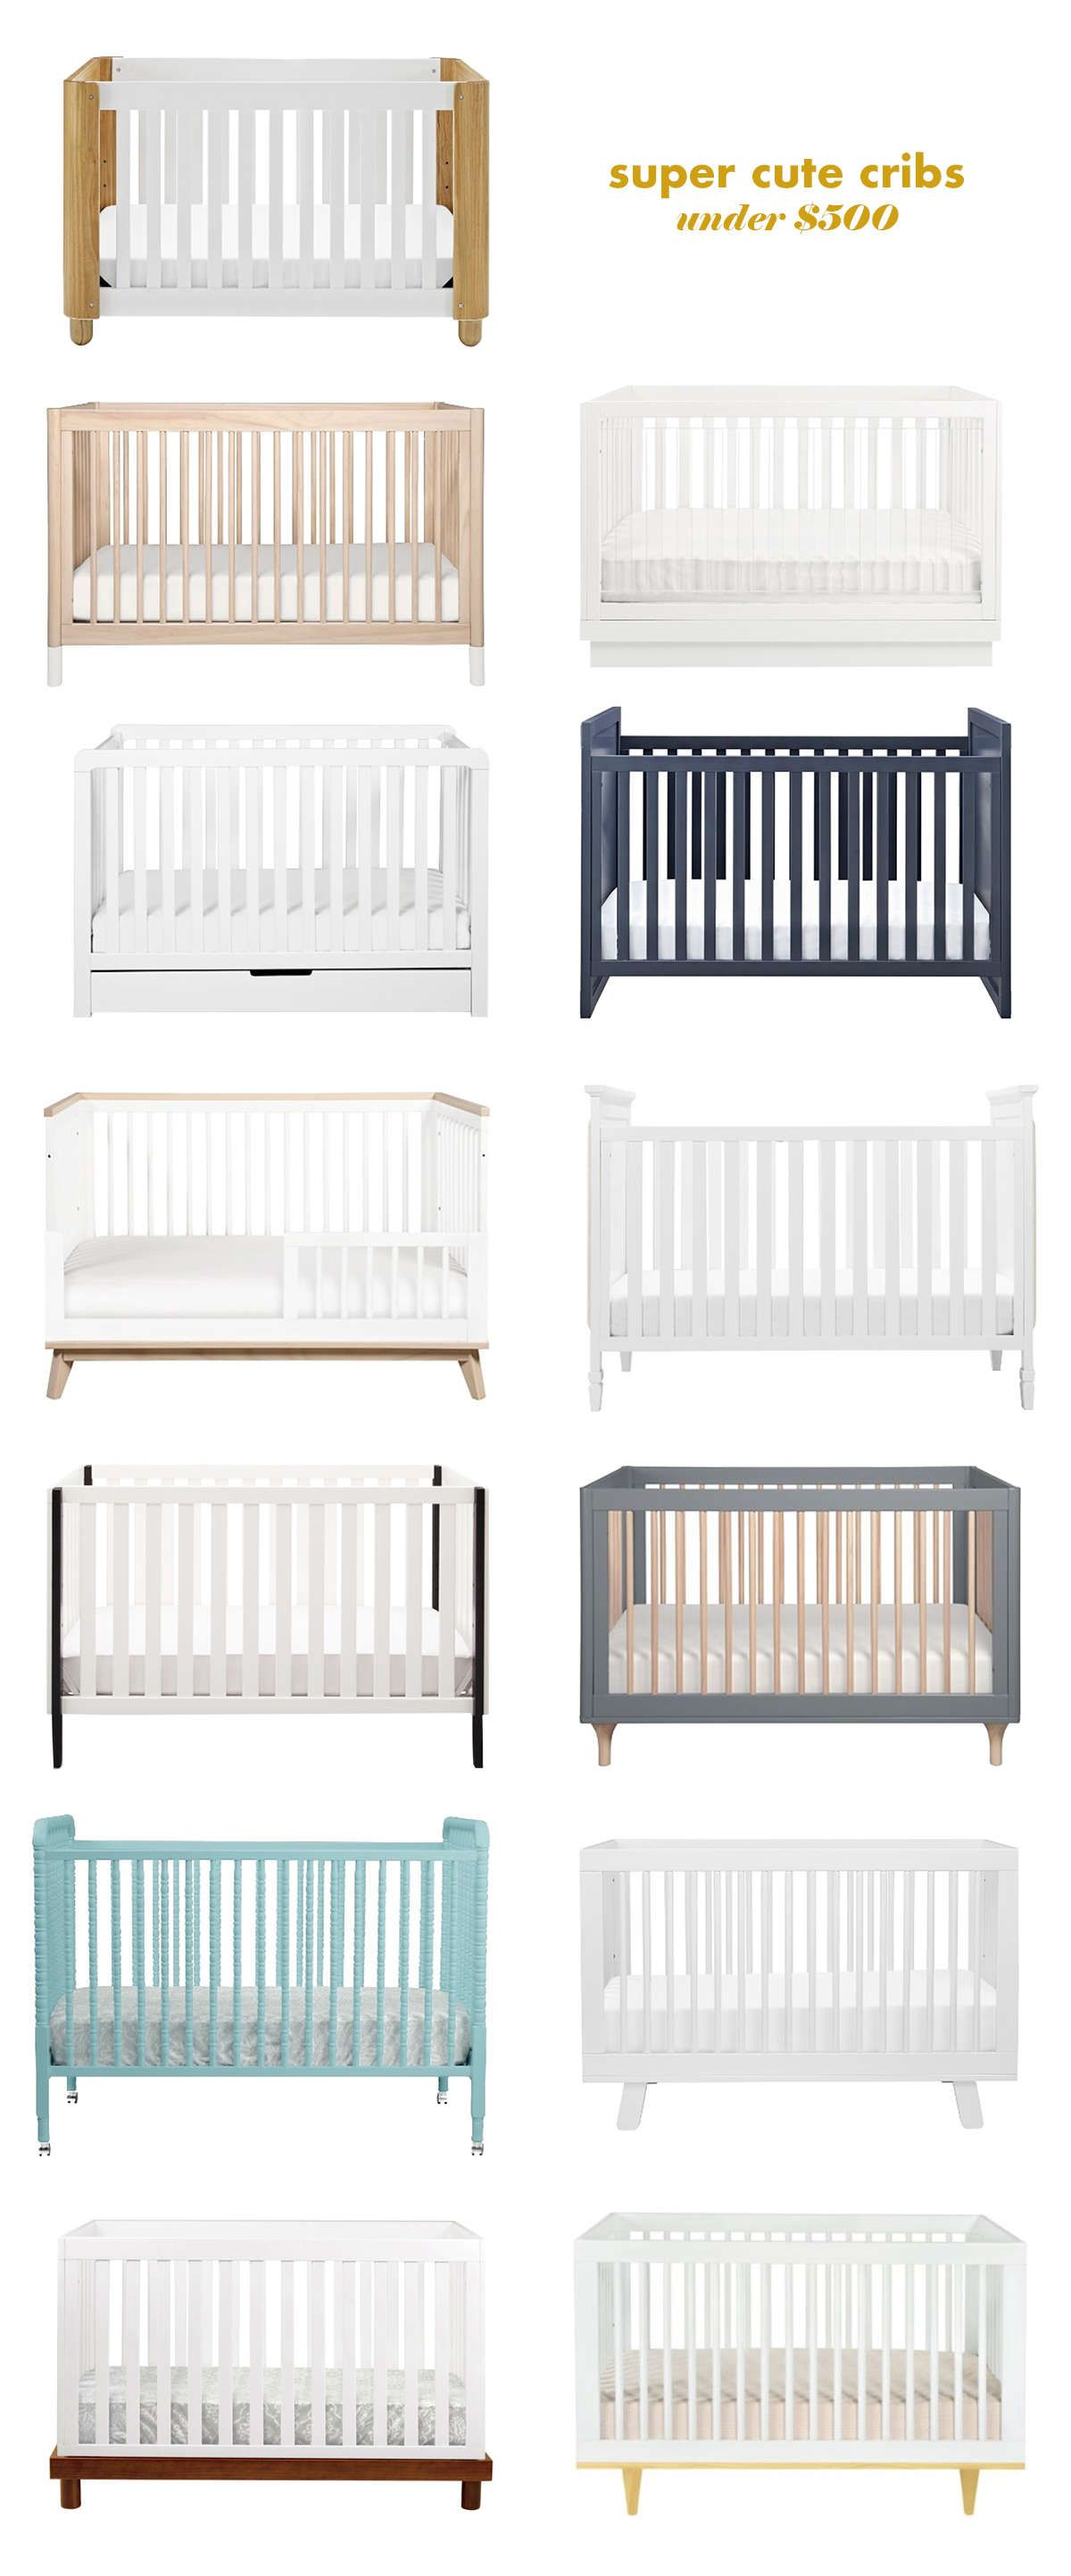 The Land Of Nod Baby Bassinets And Infant Bassinets Baby Bassinet Baby Bassinet Basket Bassinet Rocker